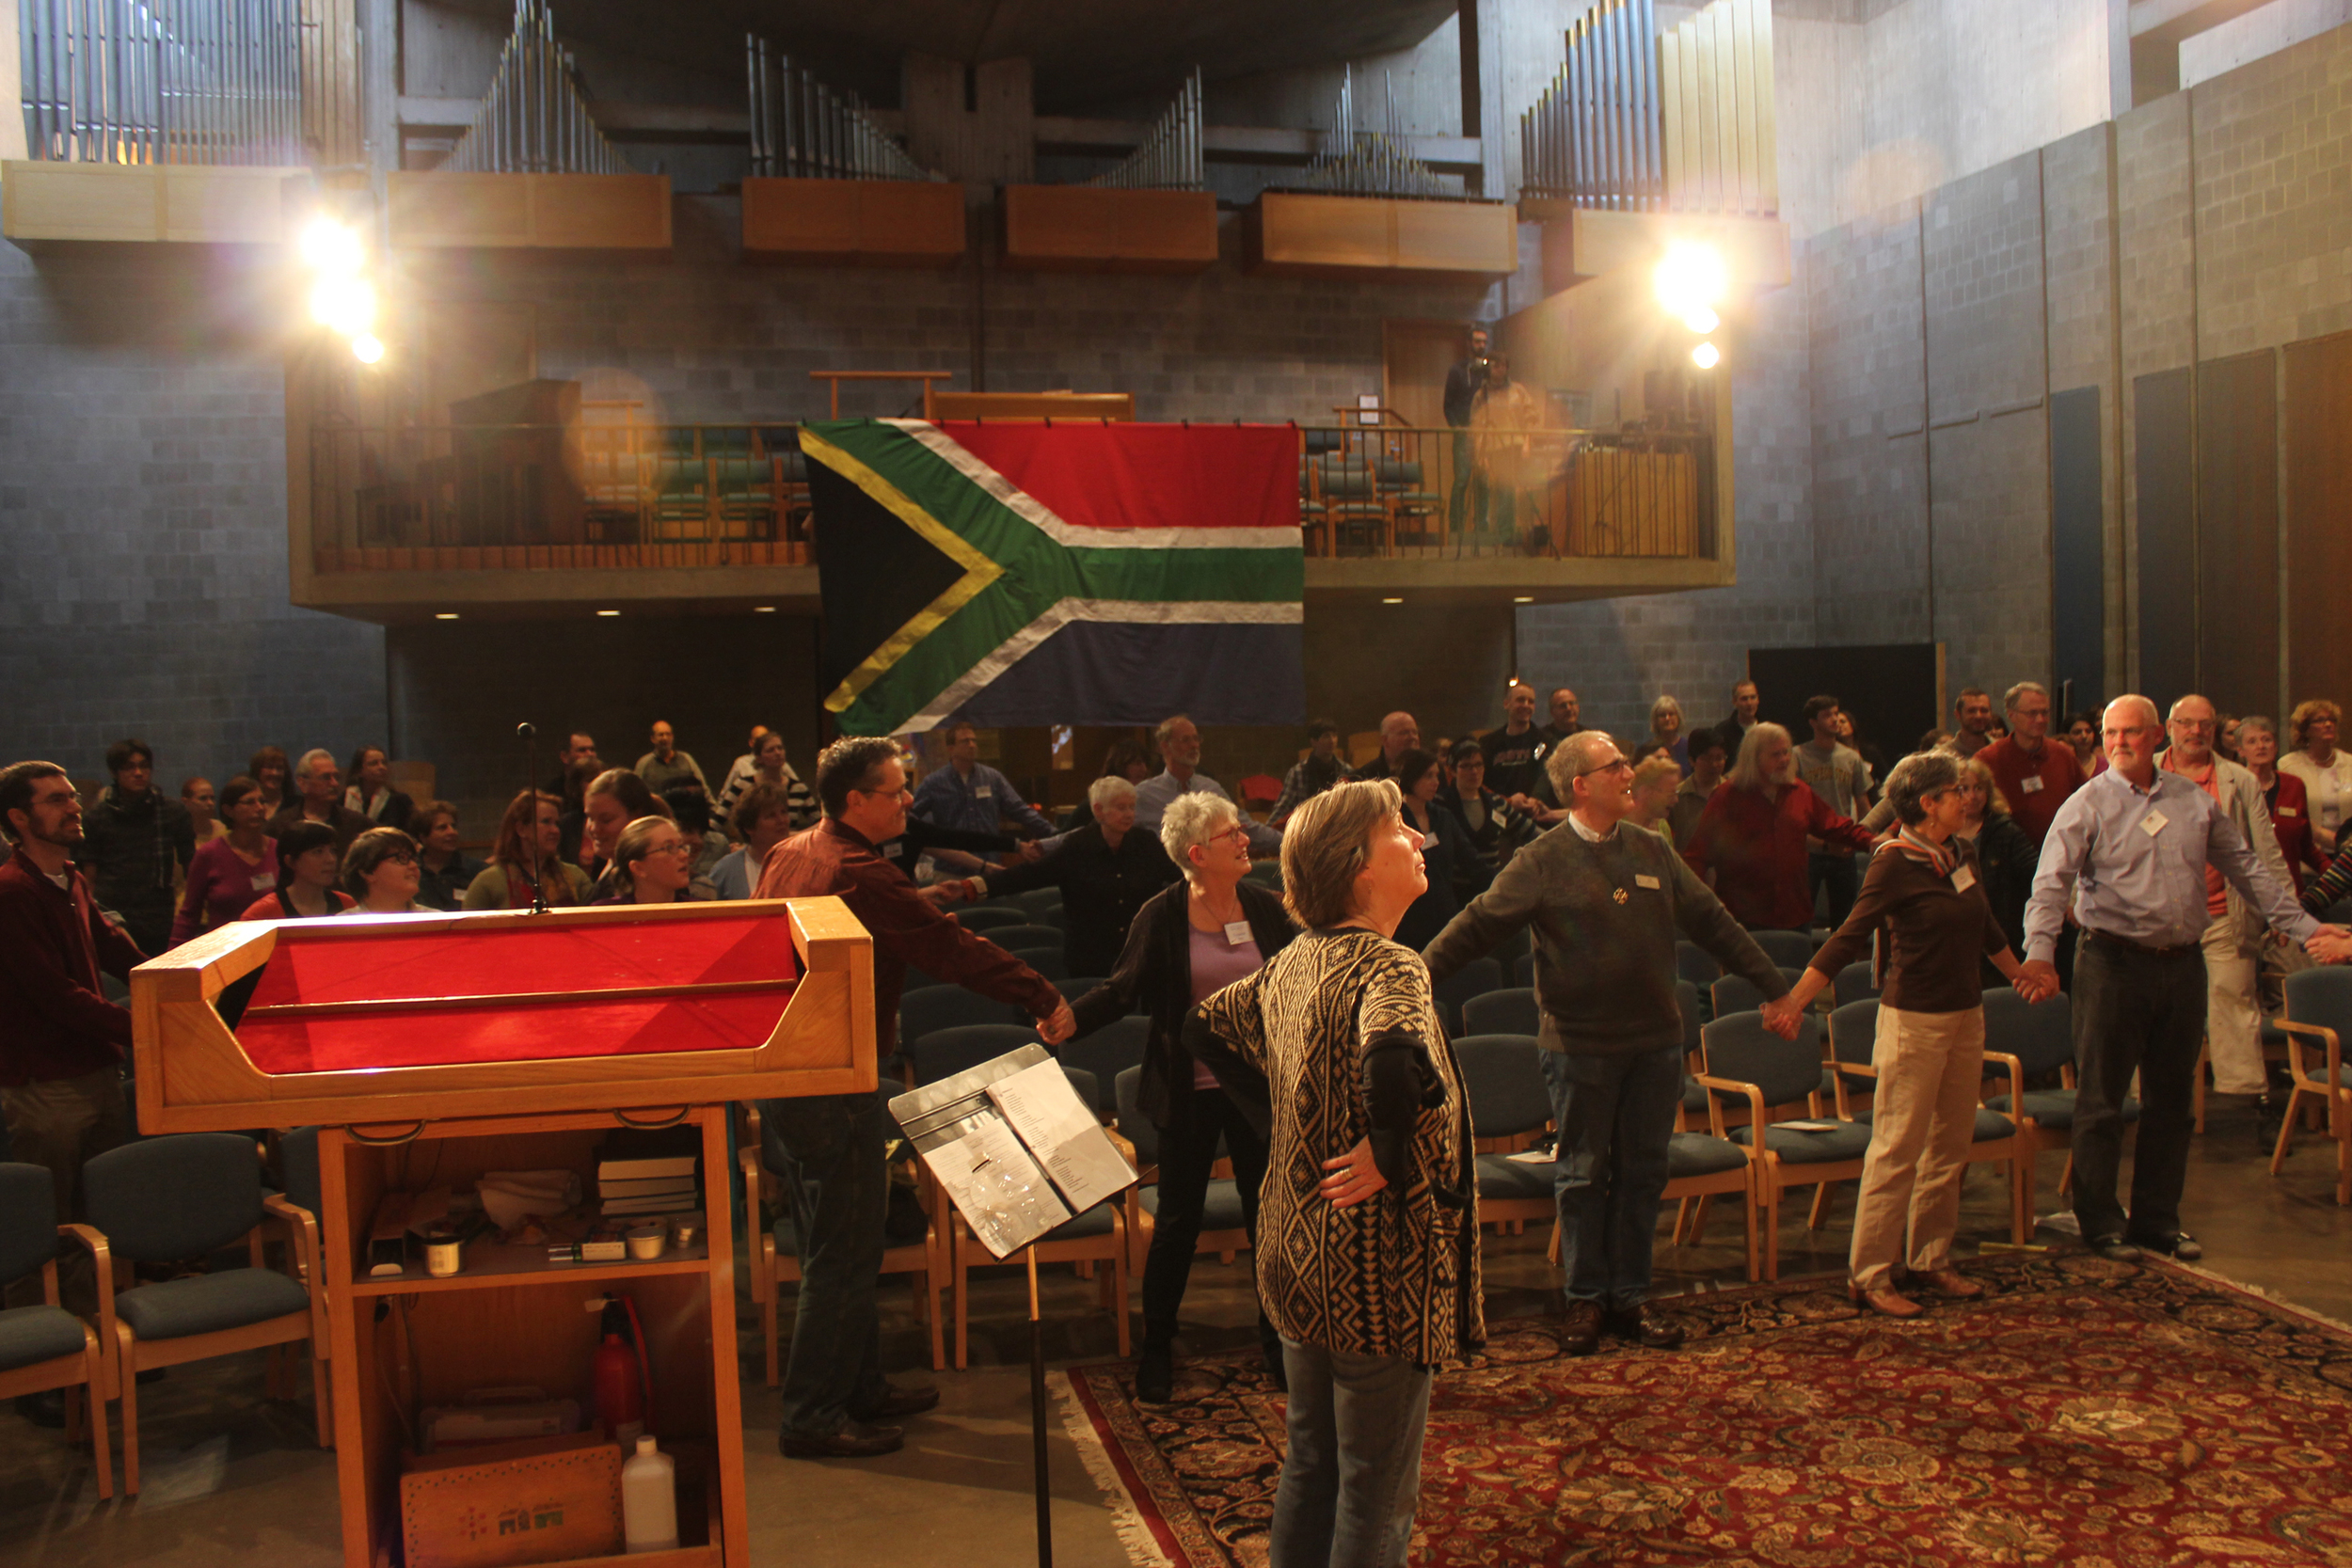 The First Unitarian church in Rochester (USA) sings the South African national anthem in Zulu on South Africa's National Day (Apr 27).